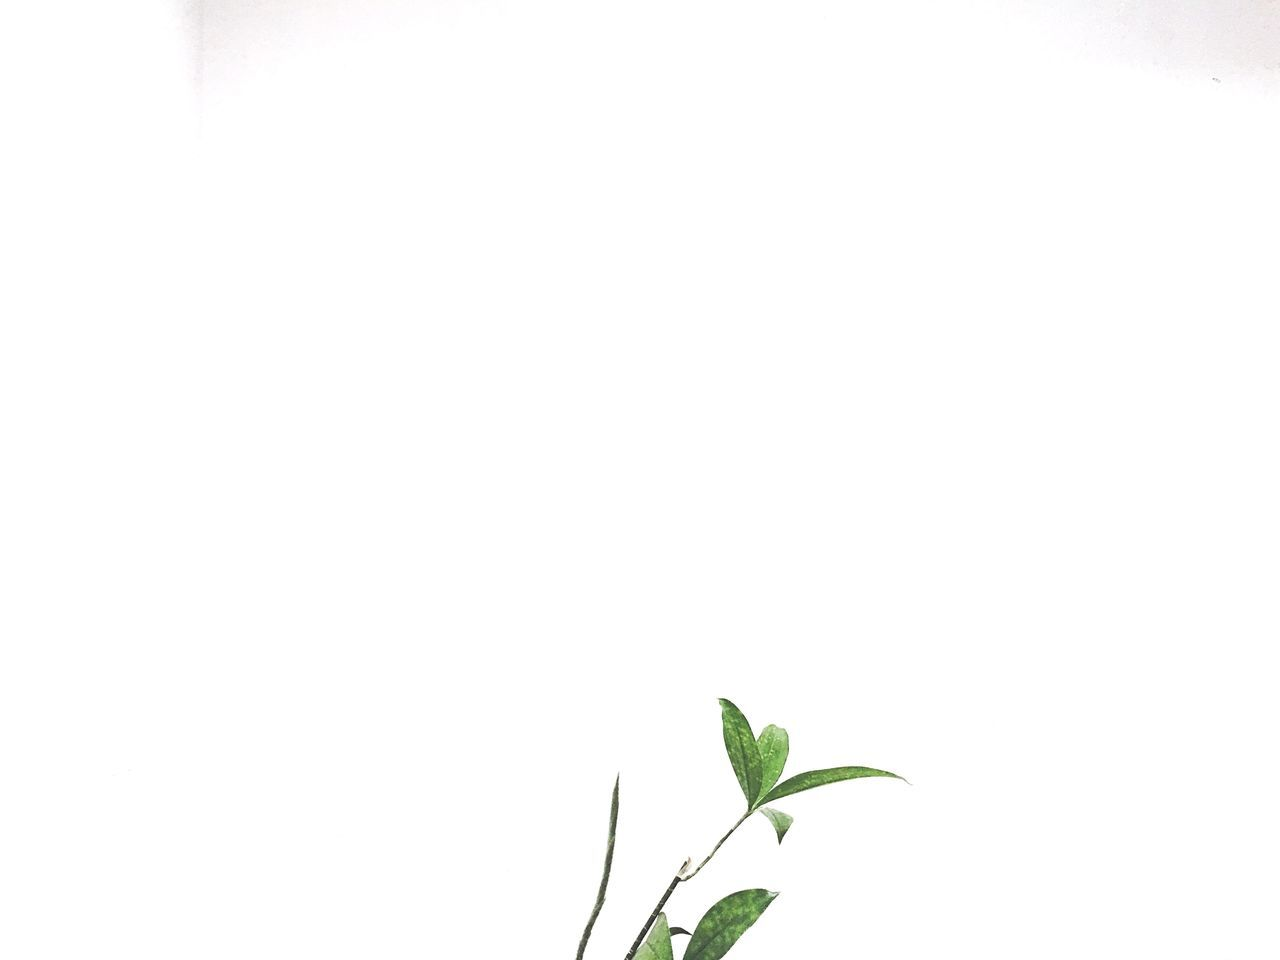 Minimalism is not a lack of something. It's simply the perfect amount of something. Leaf Plant No People Growth Low Angle View White Background Freshness Life Eeyemgallery Eeyem Photography Eyeem Philippines Personal Perspective Eeyemph Minimalobsession Minimalism Eeyem Minimalist Minimalmood Minimal Clean Simple Photography White Simple Things In Life StillLifePhotography